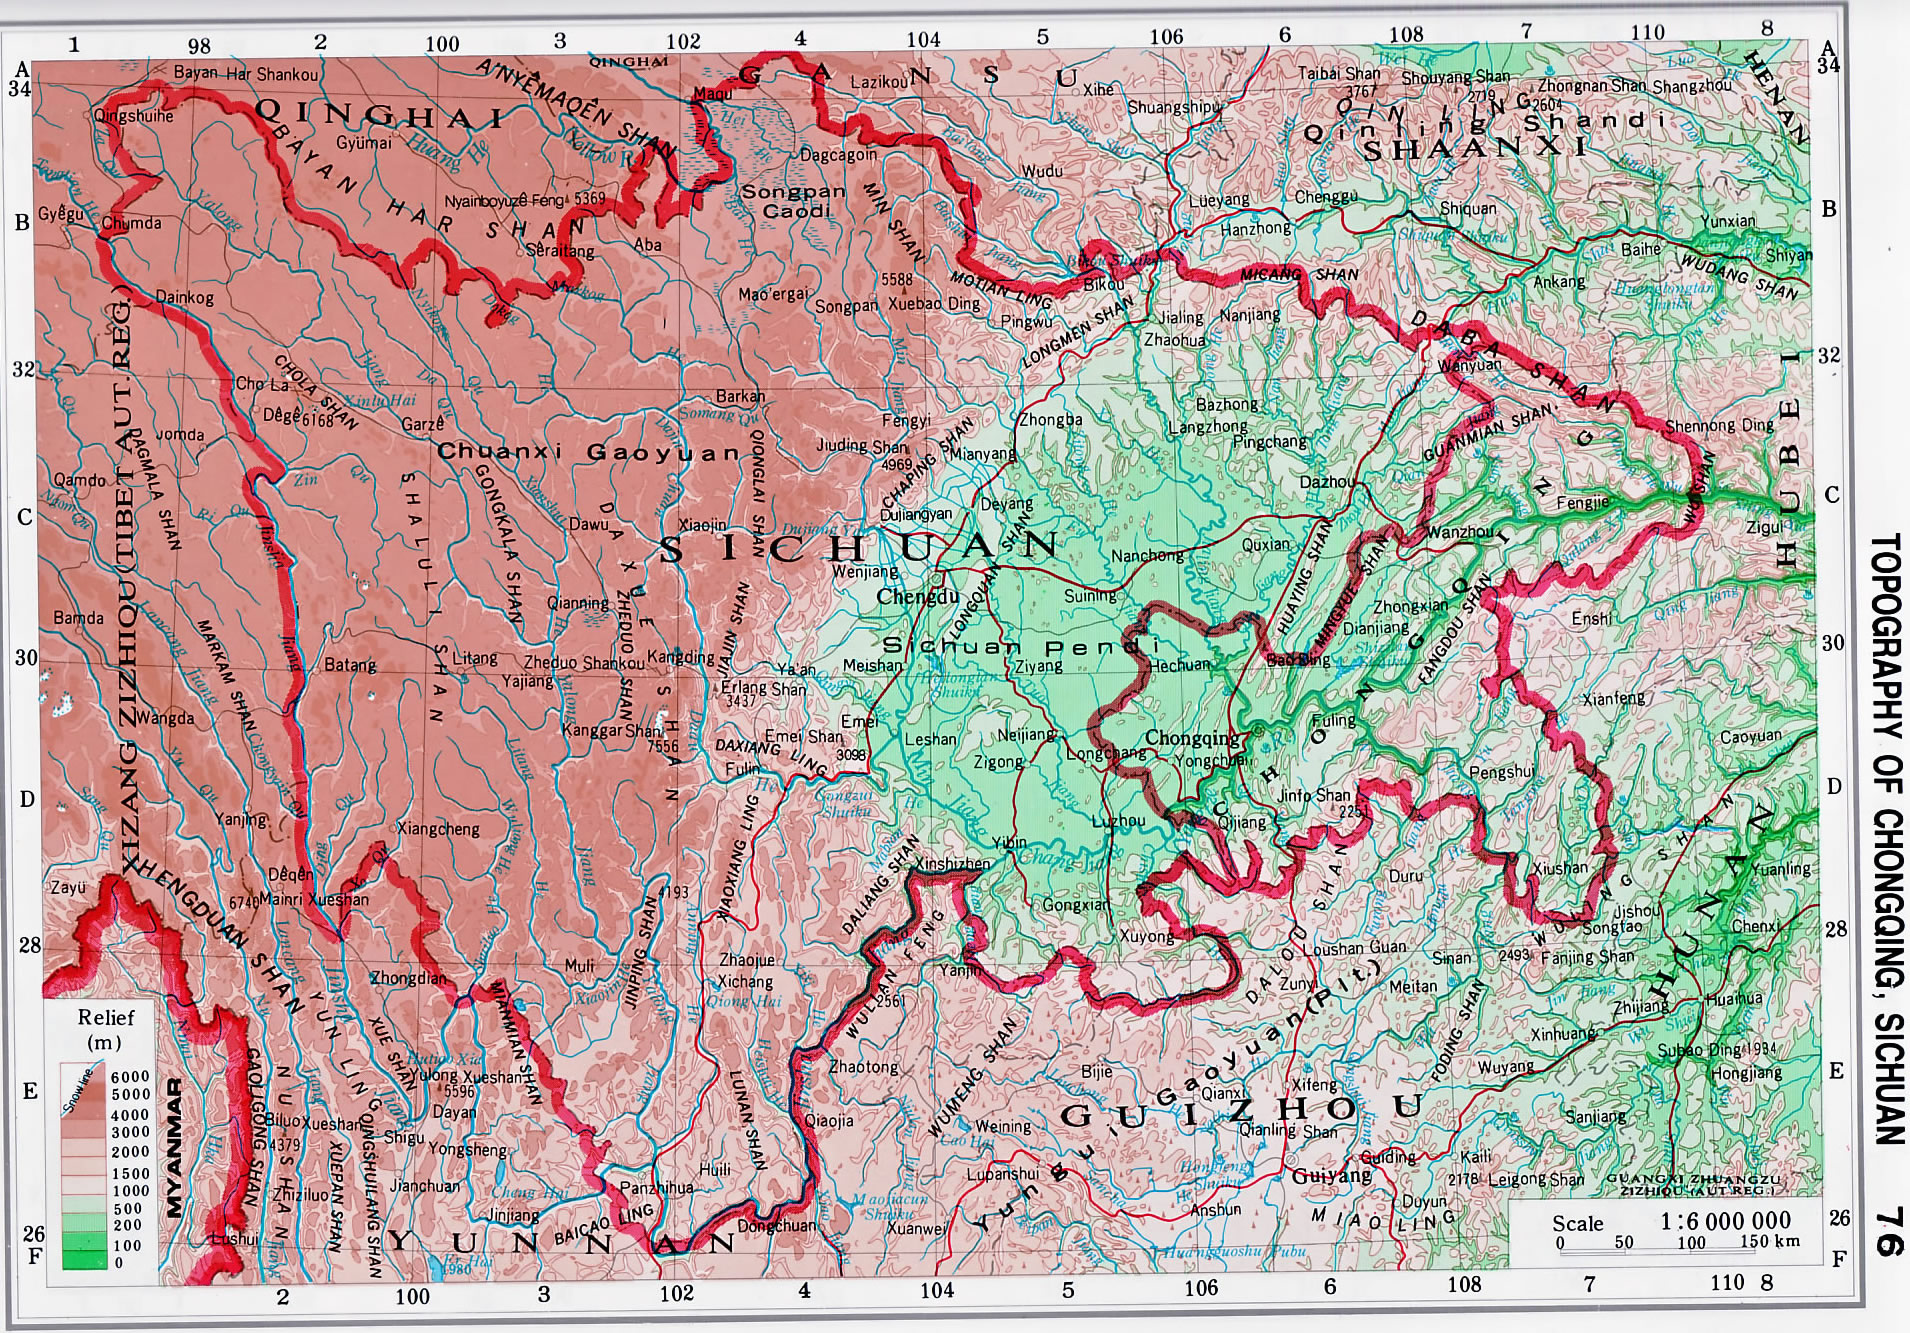 Topography Maps of Chongqing, Sichuan